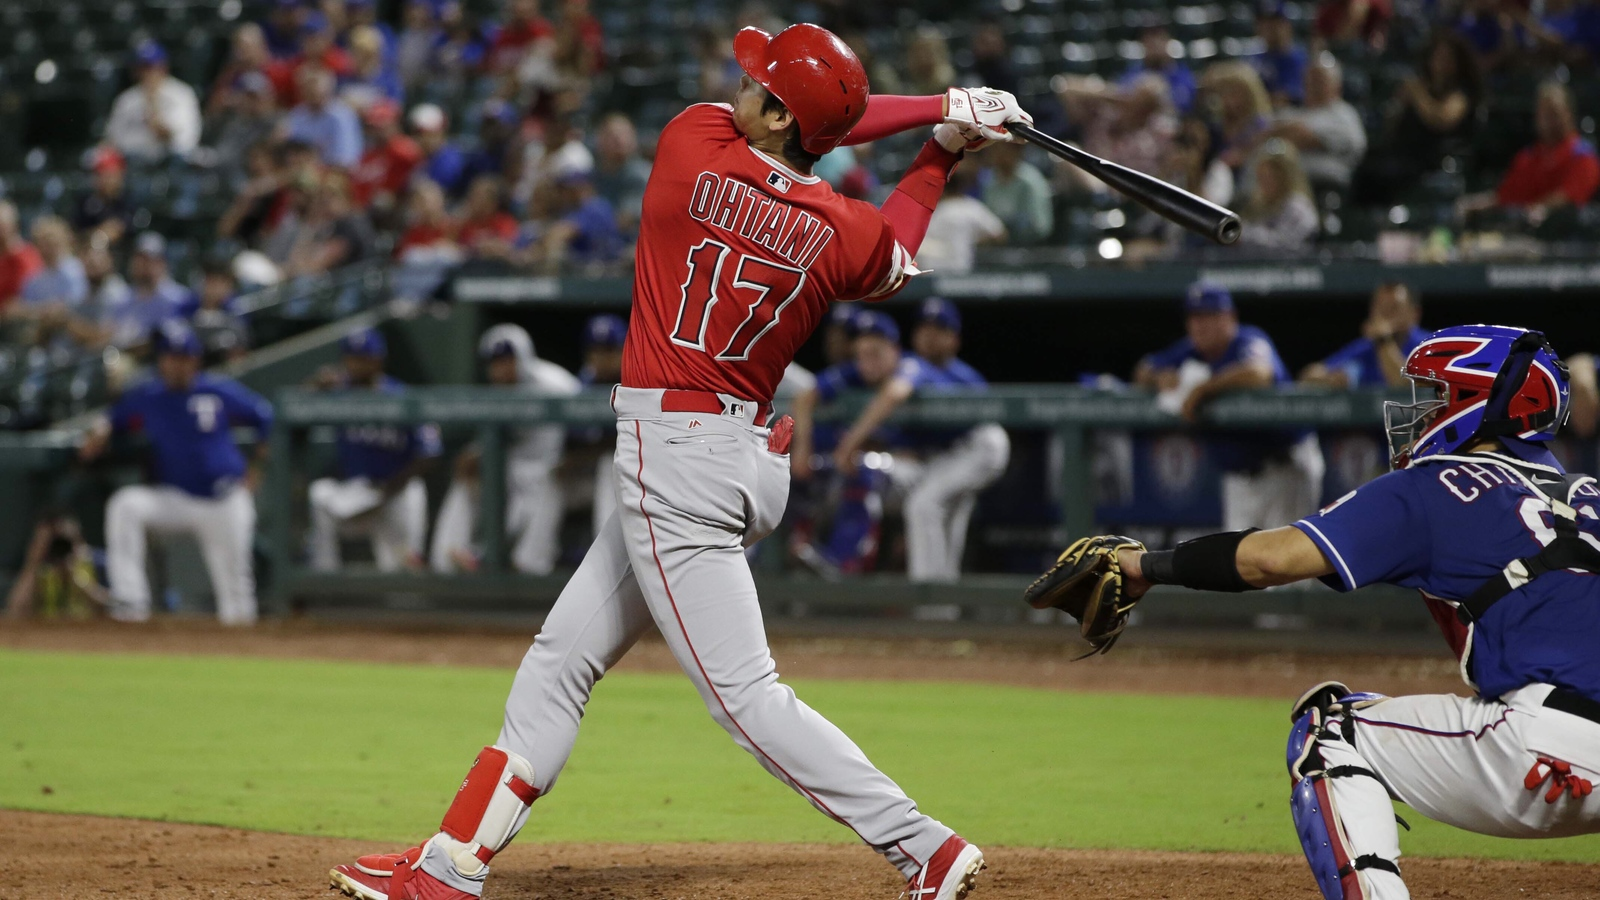 Hairy Baseball Shohei Ohtani To Finish Season As Dh What Does Dh Stand For Softball What Does Dh Stand For dpreview What Does Dh Stand For